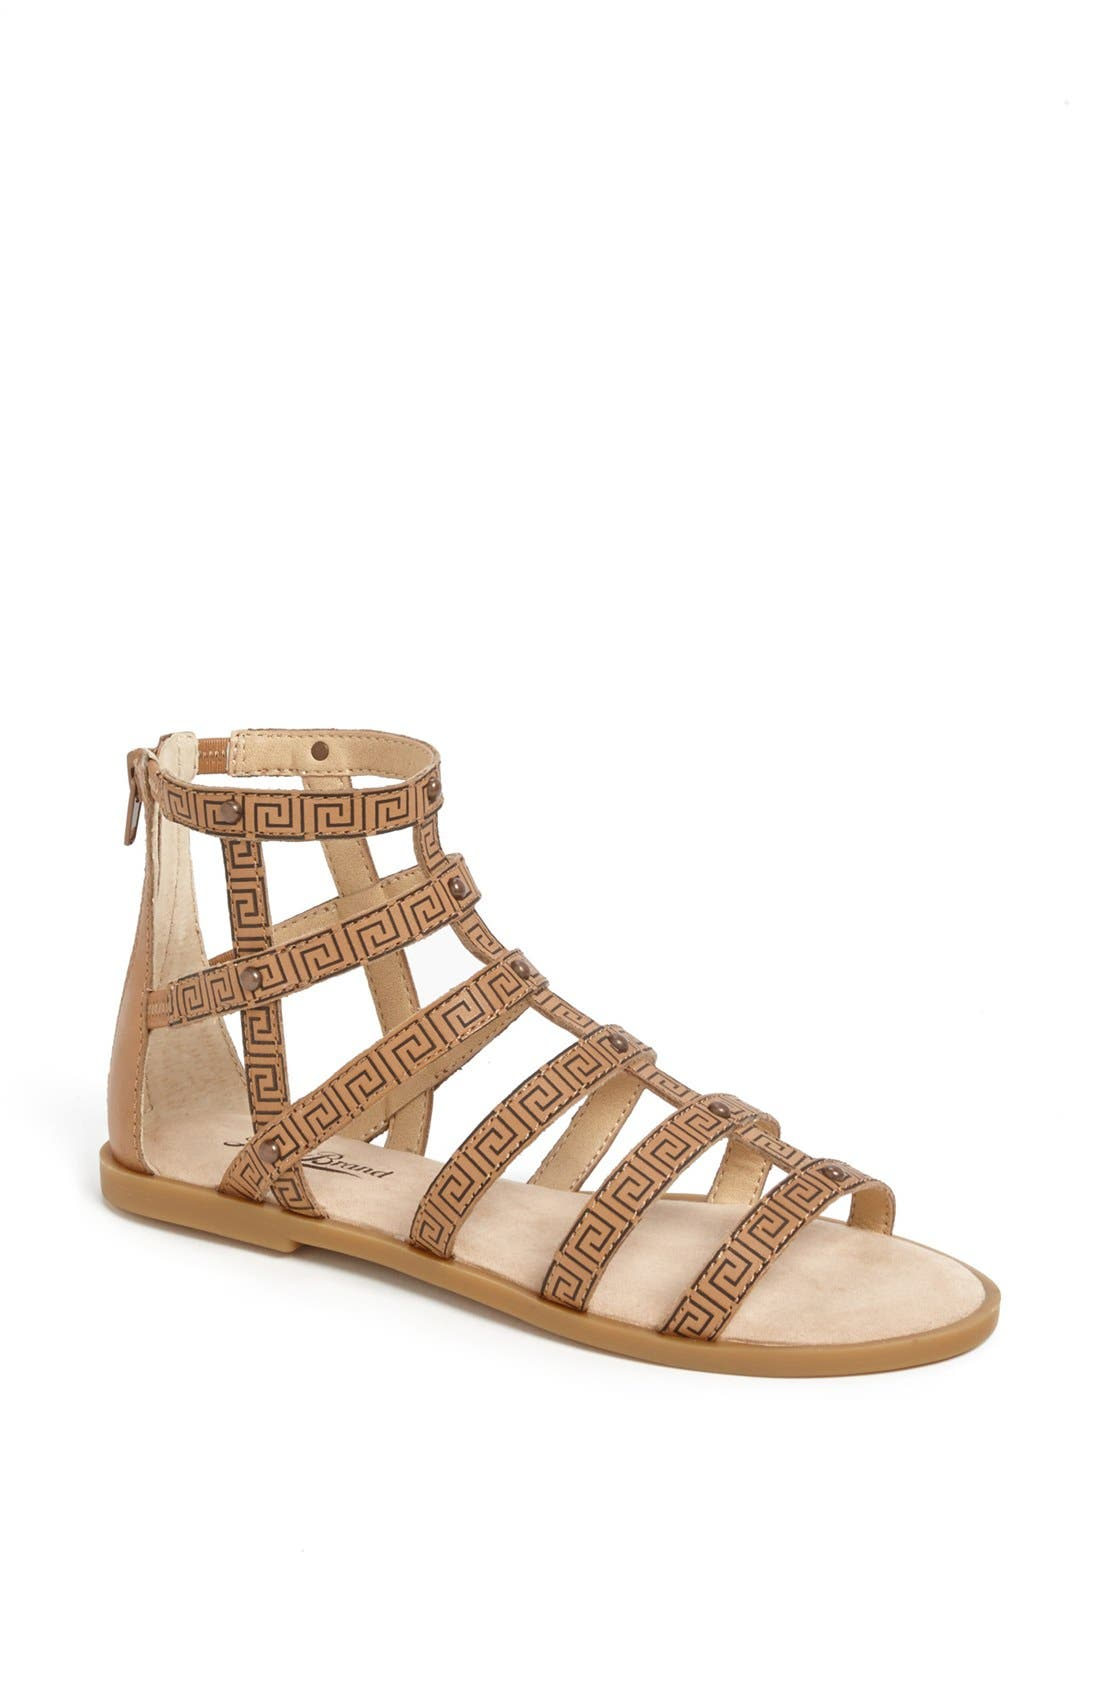 Alternate Image 1 Selected - Lucky Brand 'Beverlee' Sandal